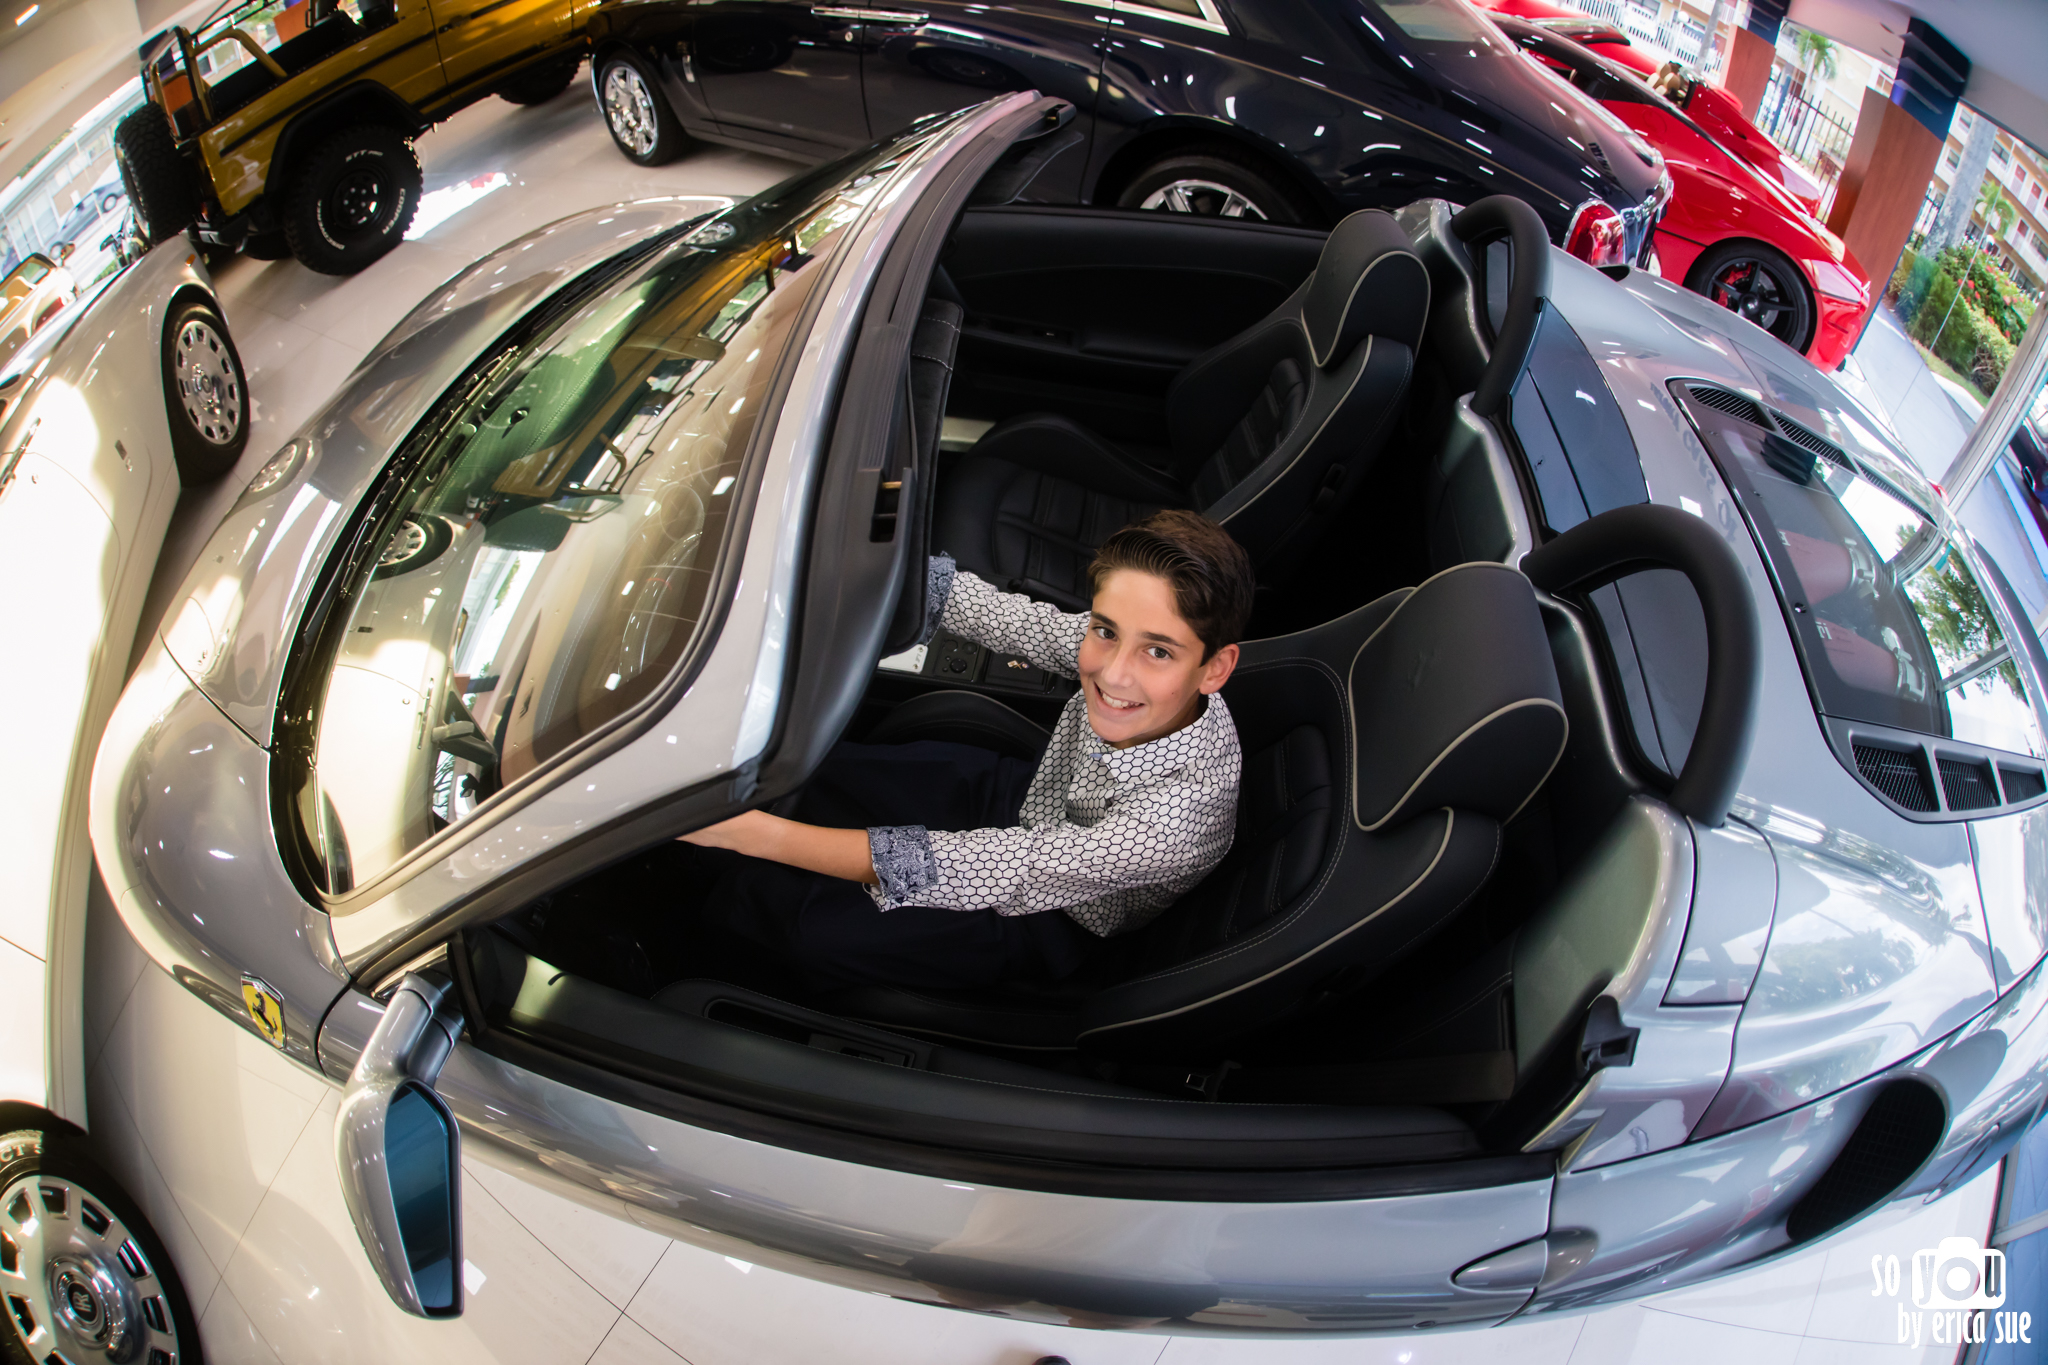 so-you-by-erica-sue-mitzvah-photographer-collection-luxury-car-ft-lauderdale-5082.jpg